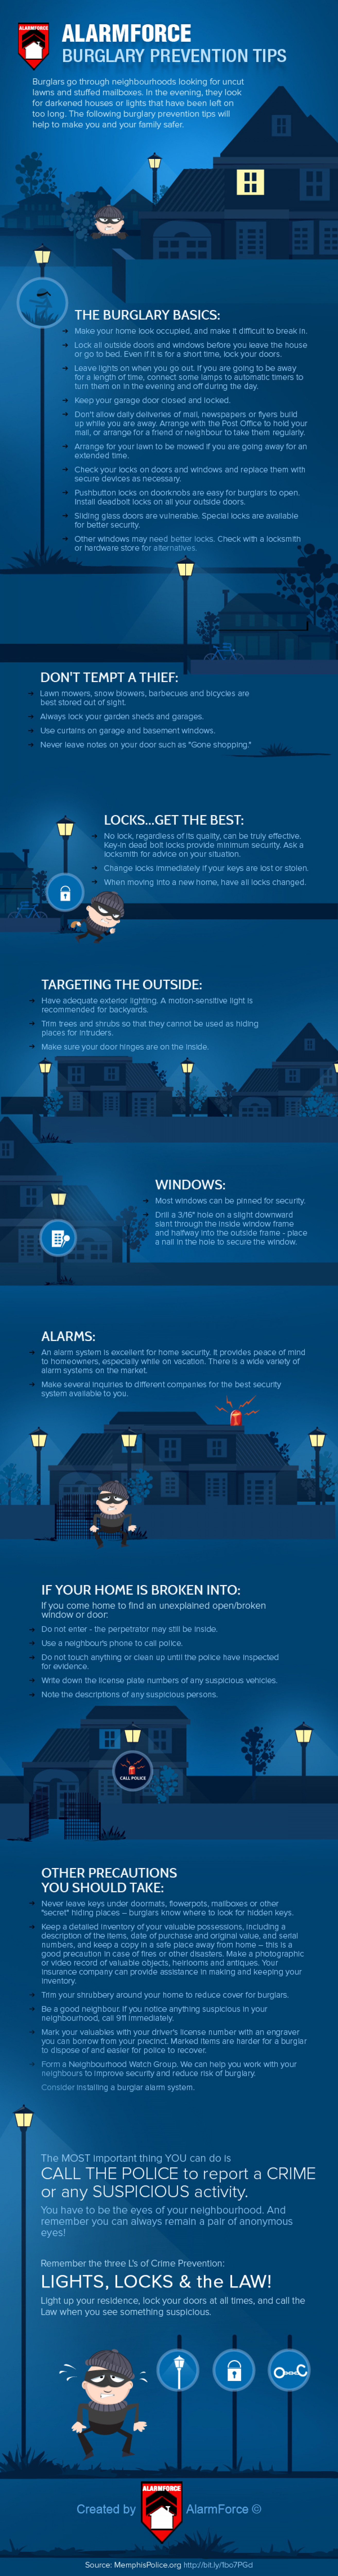 Alarmforce Burglary Prevention Tips Infographic